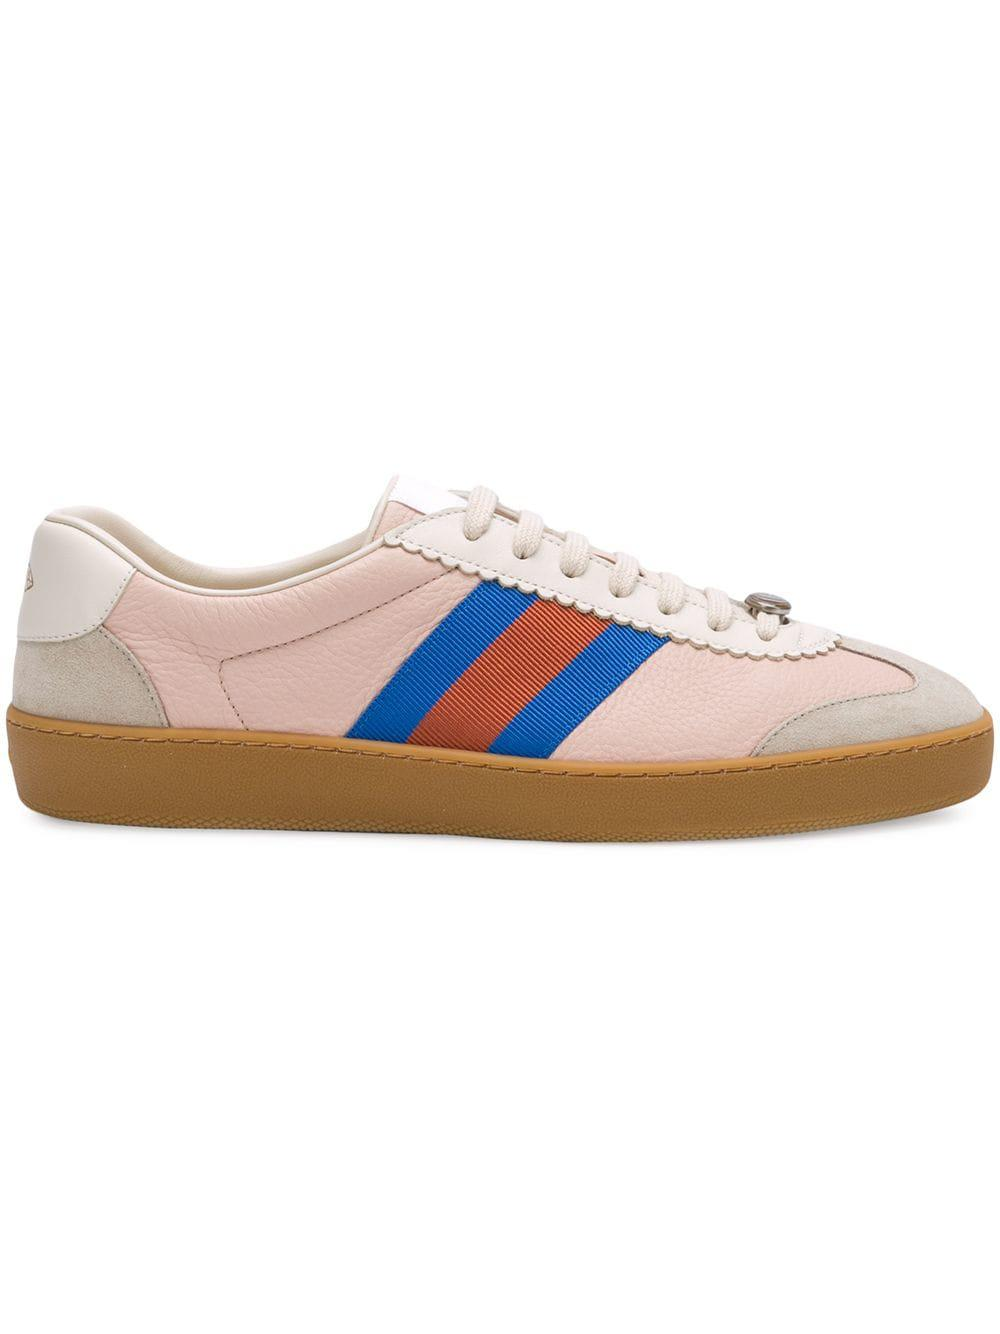 Gucci Leather And Suede Sneakers in